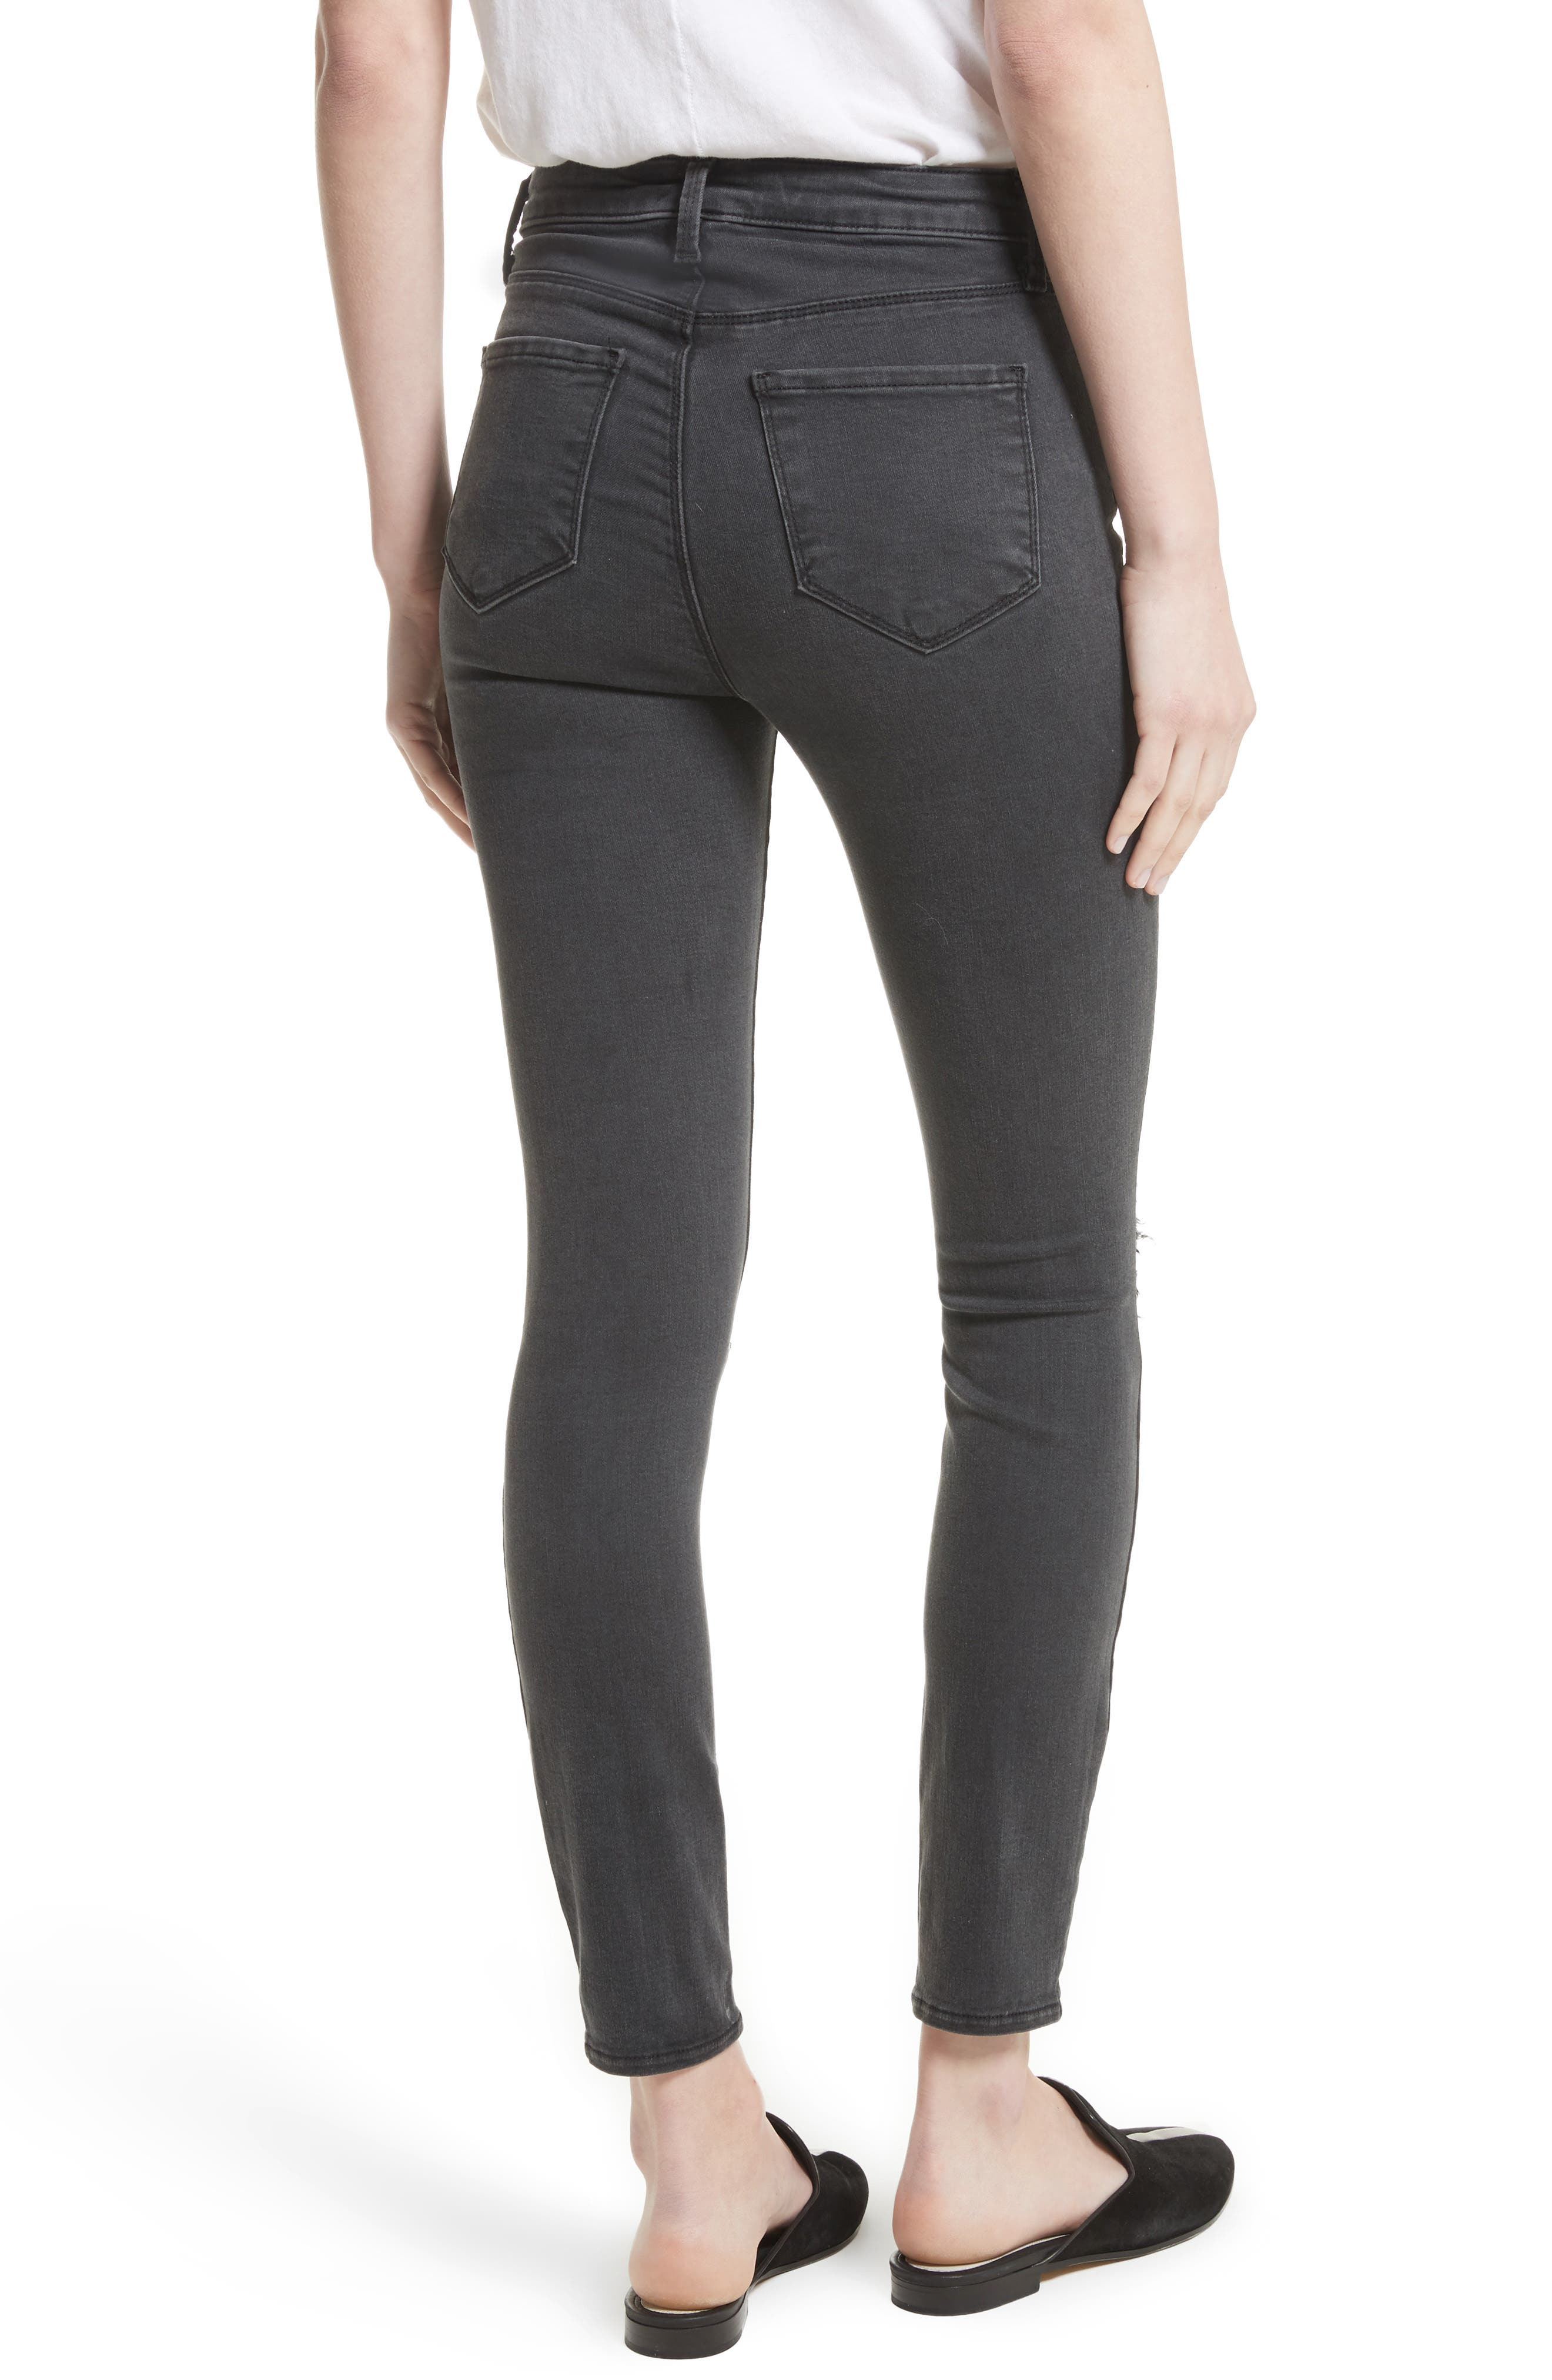 Alternate Image 3  - L'AGENCE Margot Ripped High Waist Skinny Jeans (Coal Destruct)